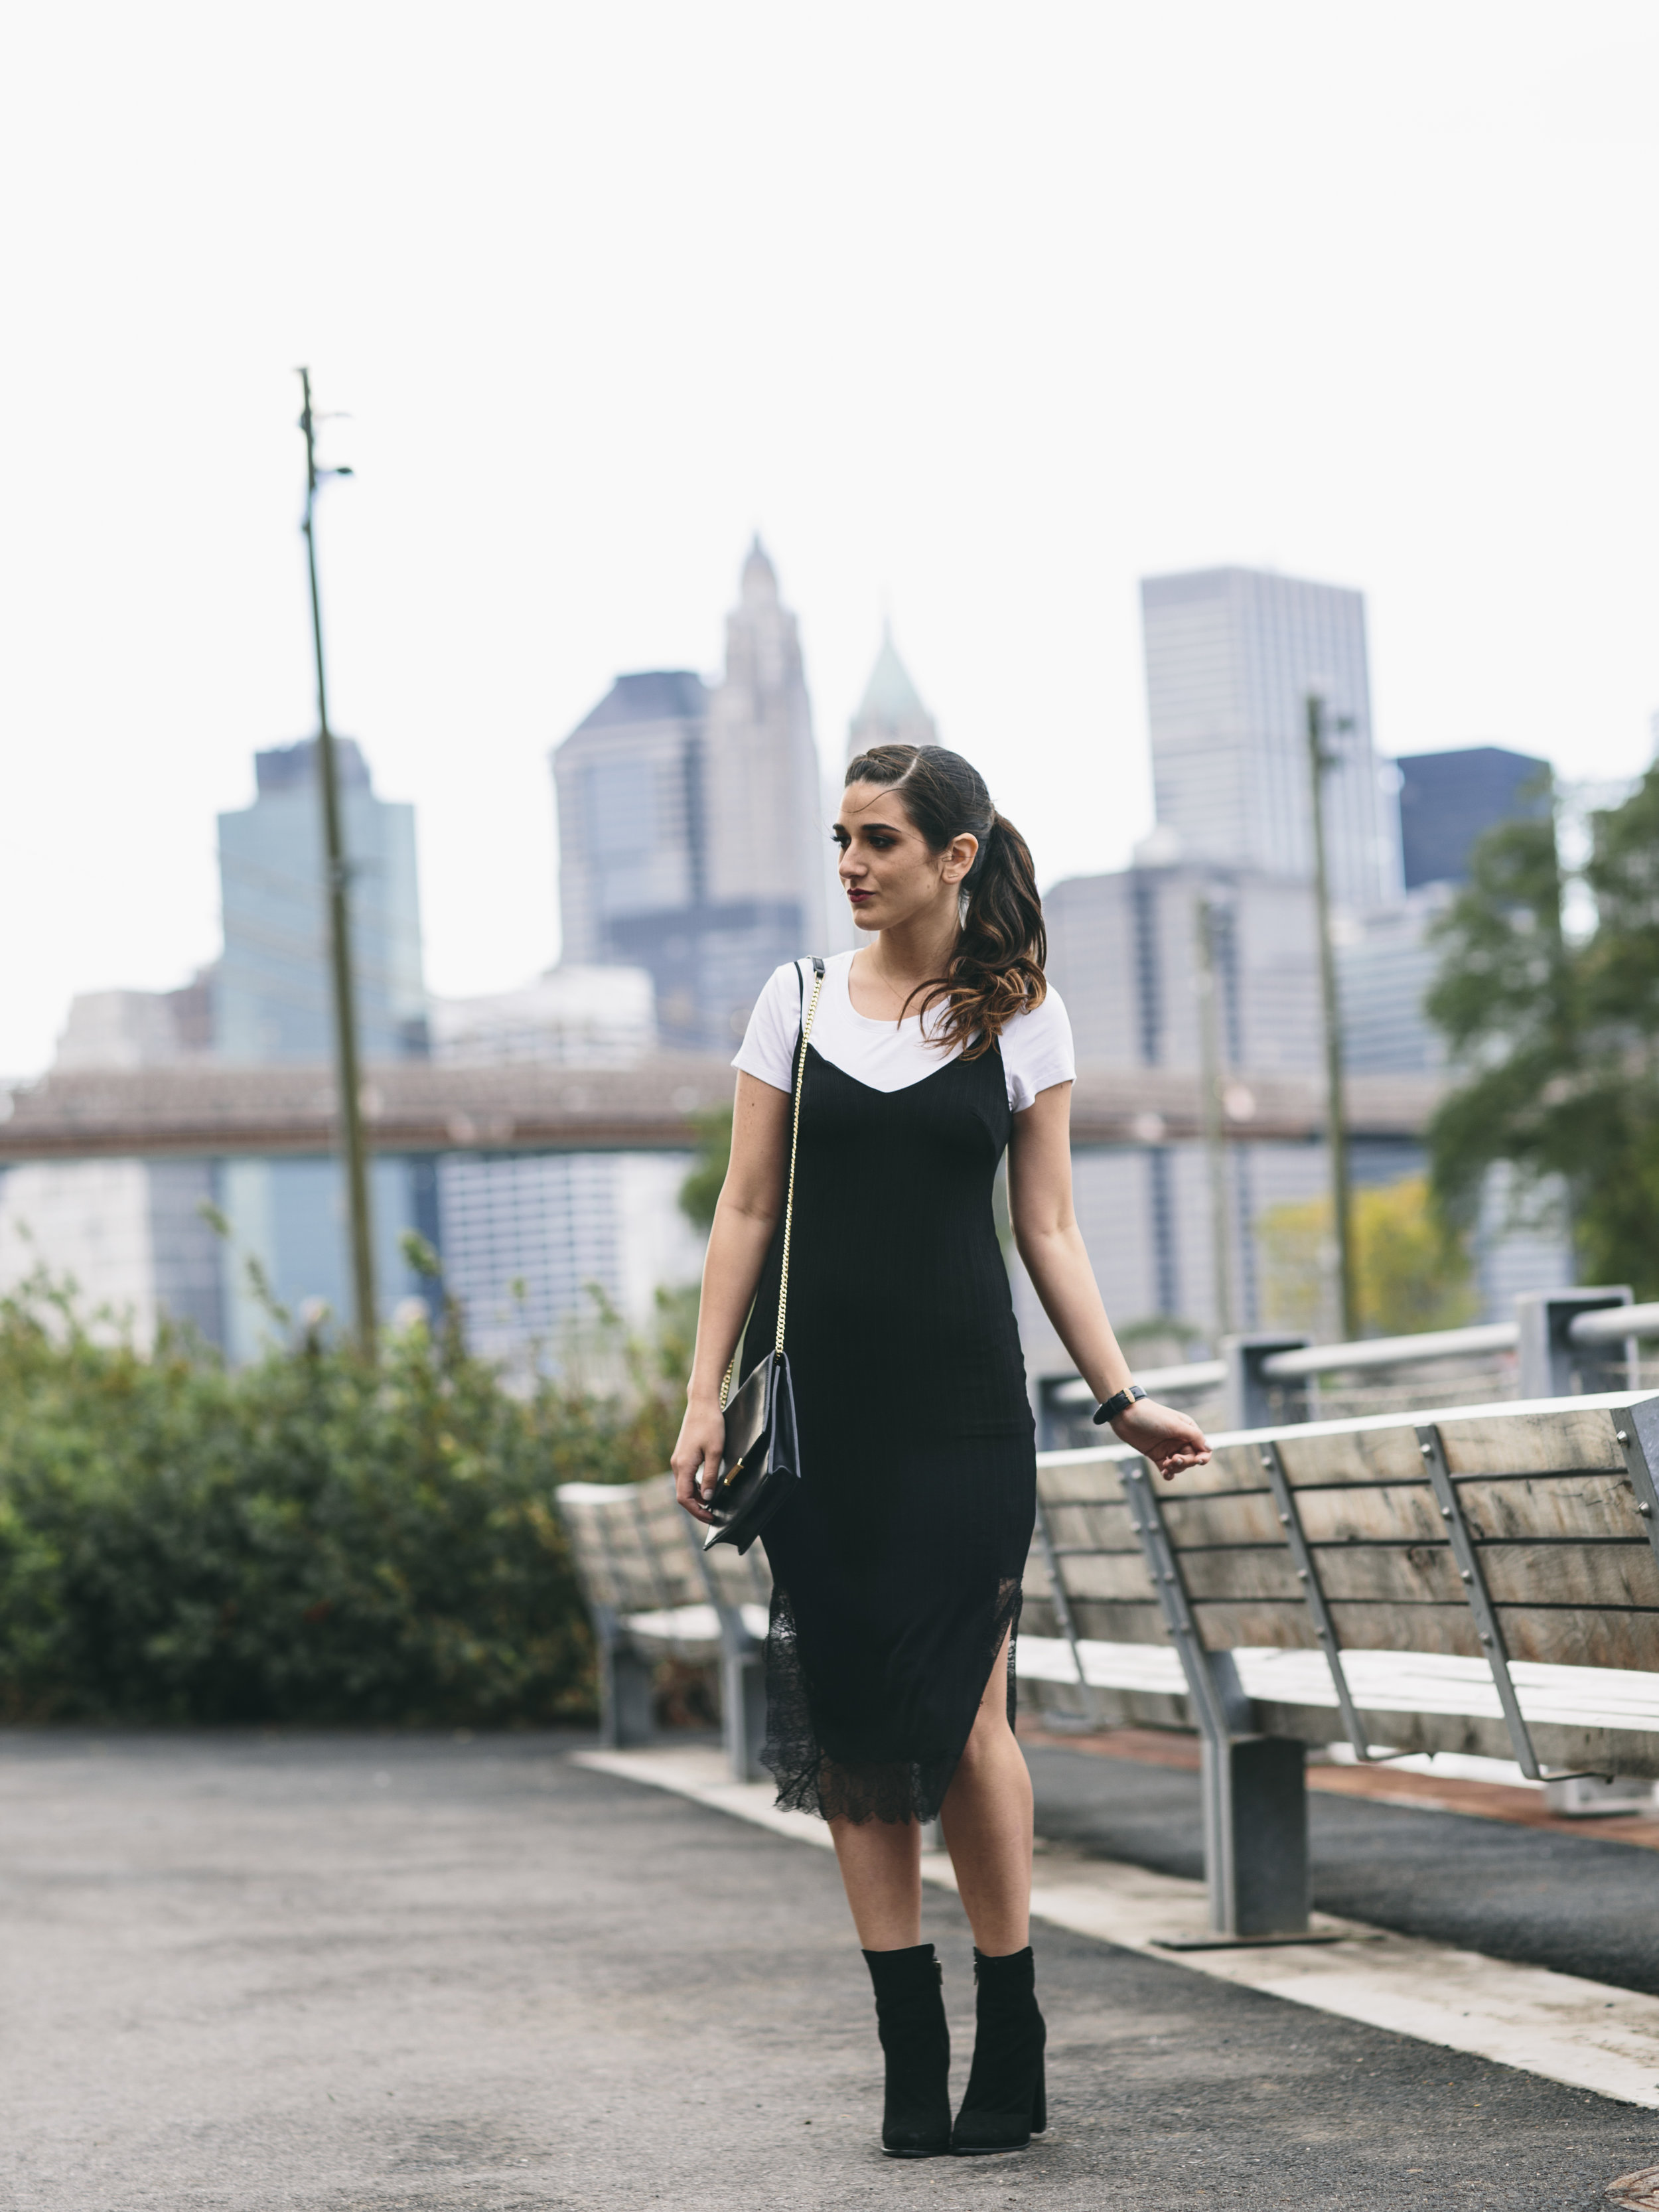 Black Lace Slip Dress Over White Tee Louboutins & Love Fashion Blog Esther Santer NYC Street Style Blogger Outfit OOTD Trendy Booties M4D3 Online Shopping Girl Women Fall Look Ivanka Trump Cocktail Bag Watch Wear Hair Ponytail Inspo Edgy Fashionista.jpg